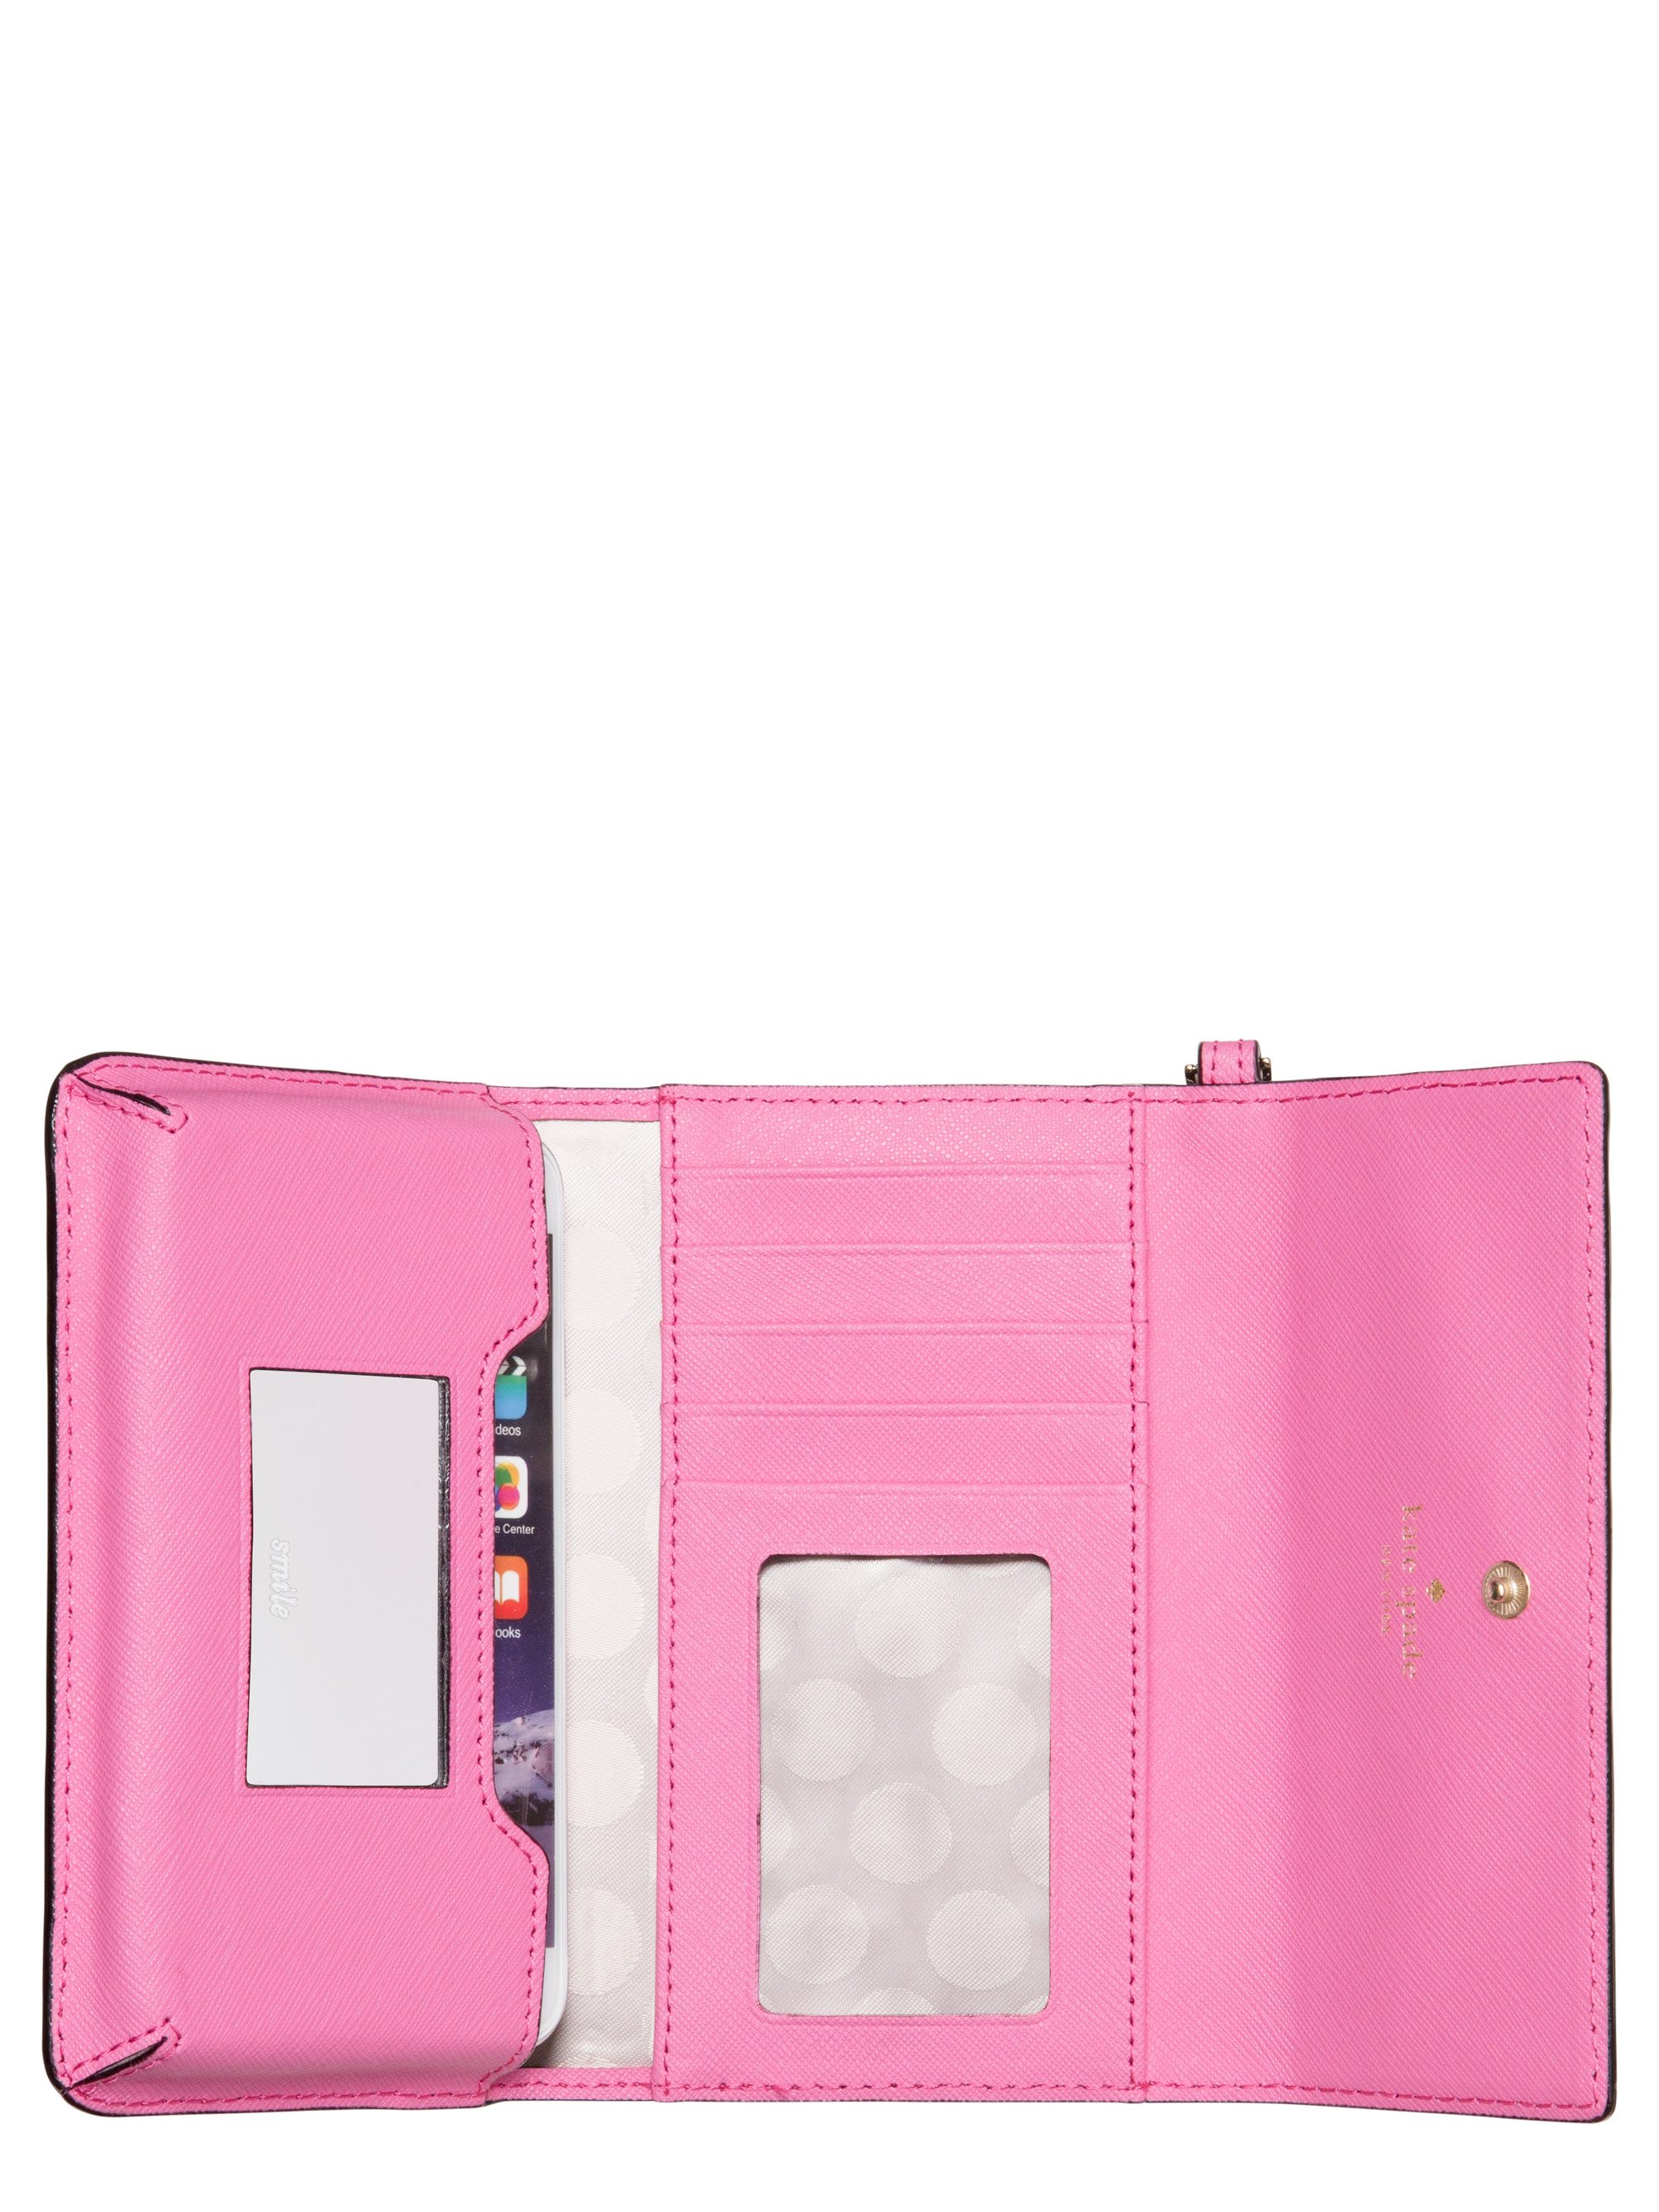 iPhone Case Wristlet Kate Spade New York Buy Cheap Sast Footlocker Finishline Cheap Online Best Store To Get Cheap Price Sale 2018 New qsZRJ